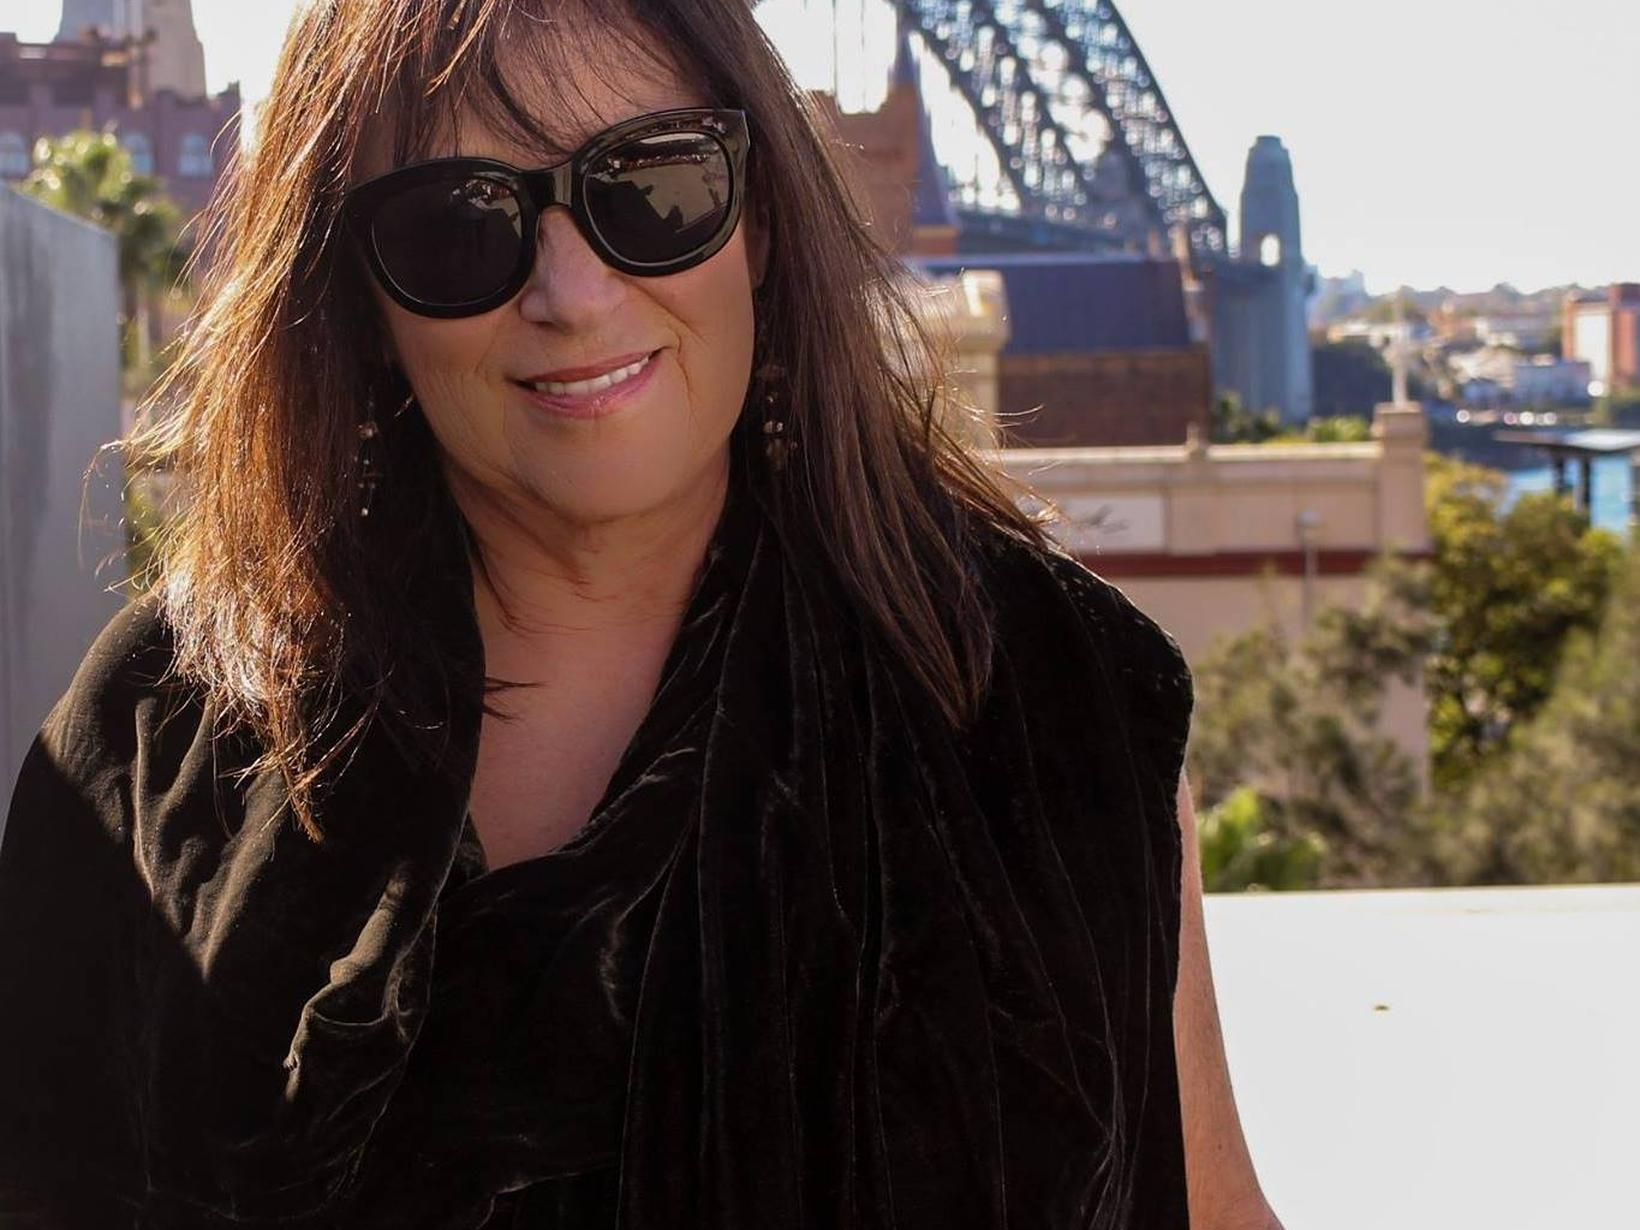 Rosanne from Sydney, New South Wales, Australia